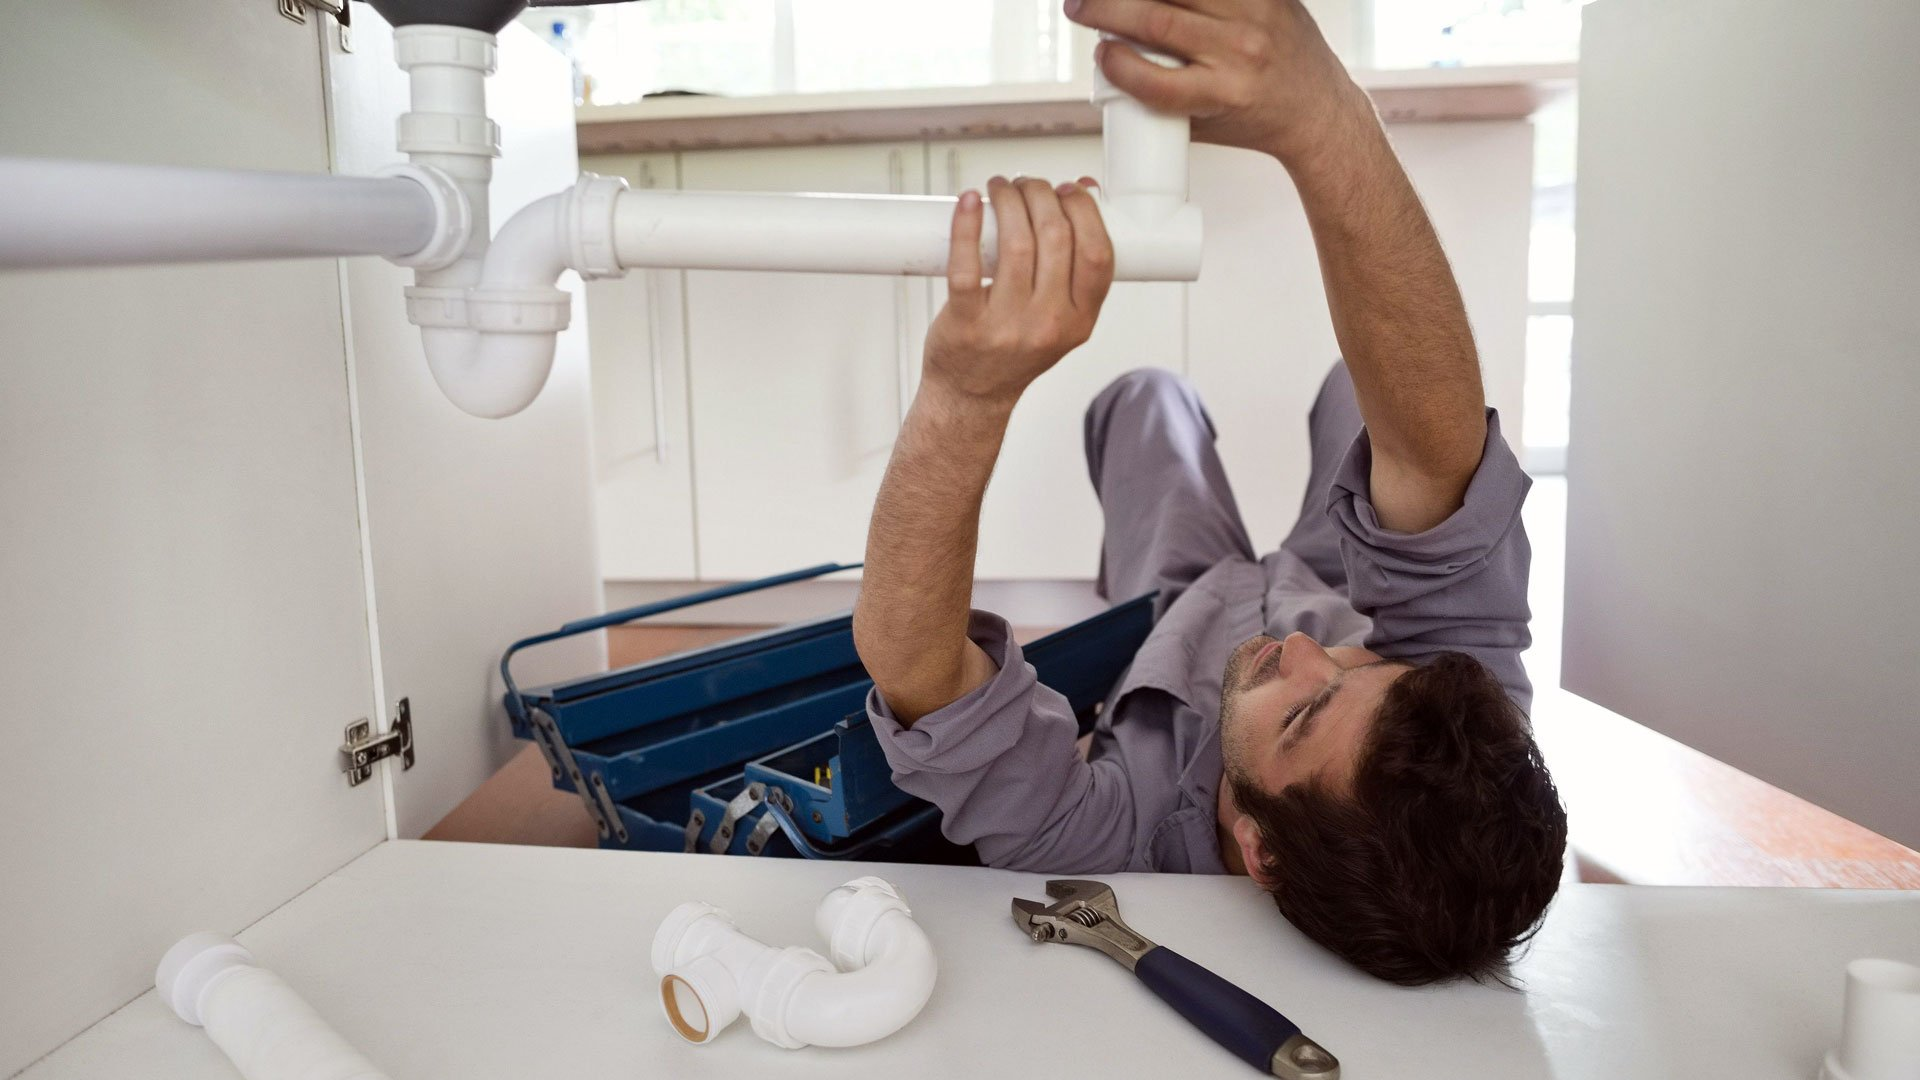 Plumber working on water line repair while under the sink